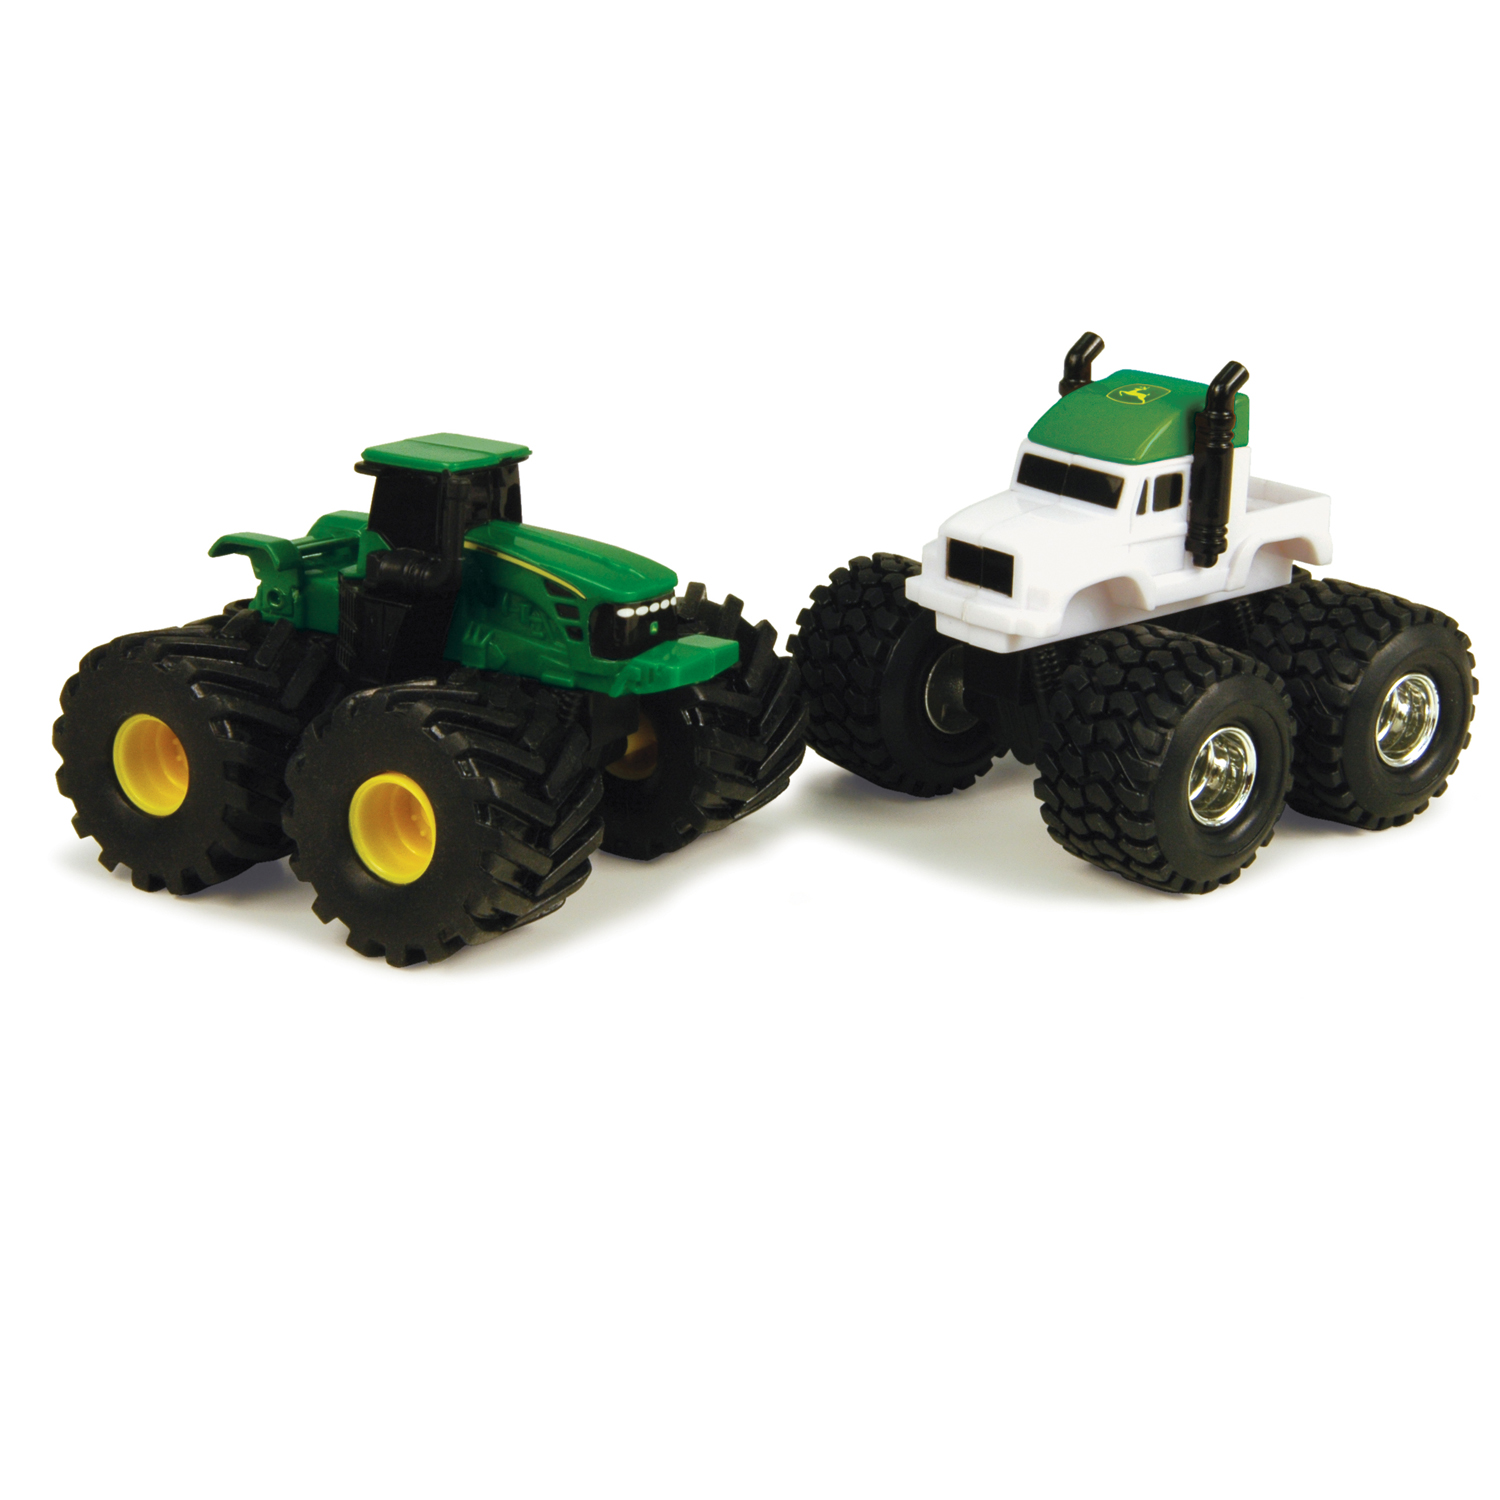 John Deere Toys - Monster Treads Green Tractor and Semi 2-Pack at ...